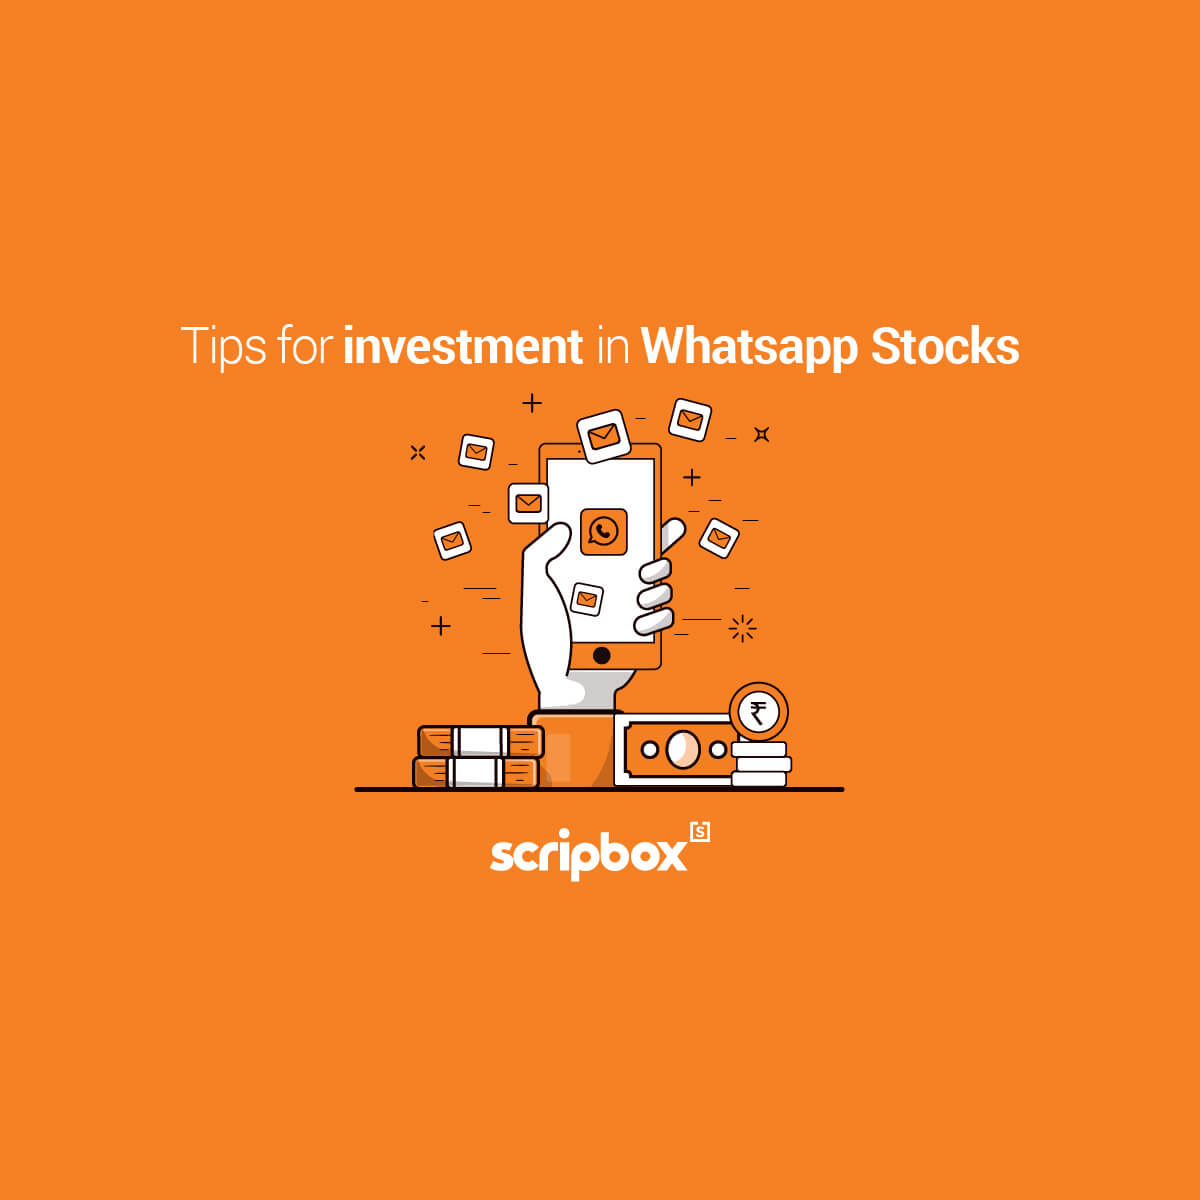 investing on sms whatsapp stock tips